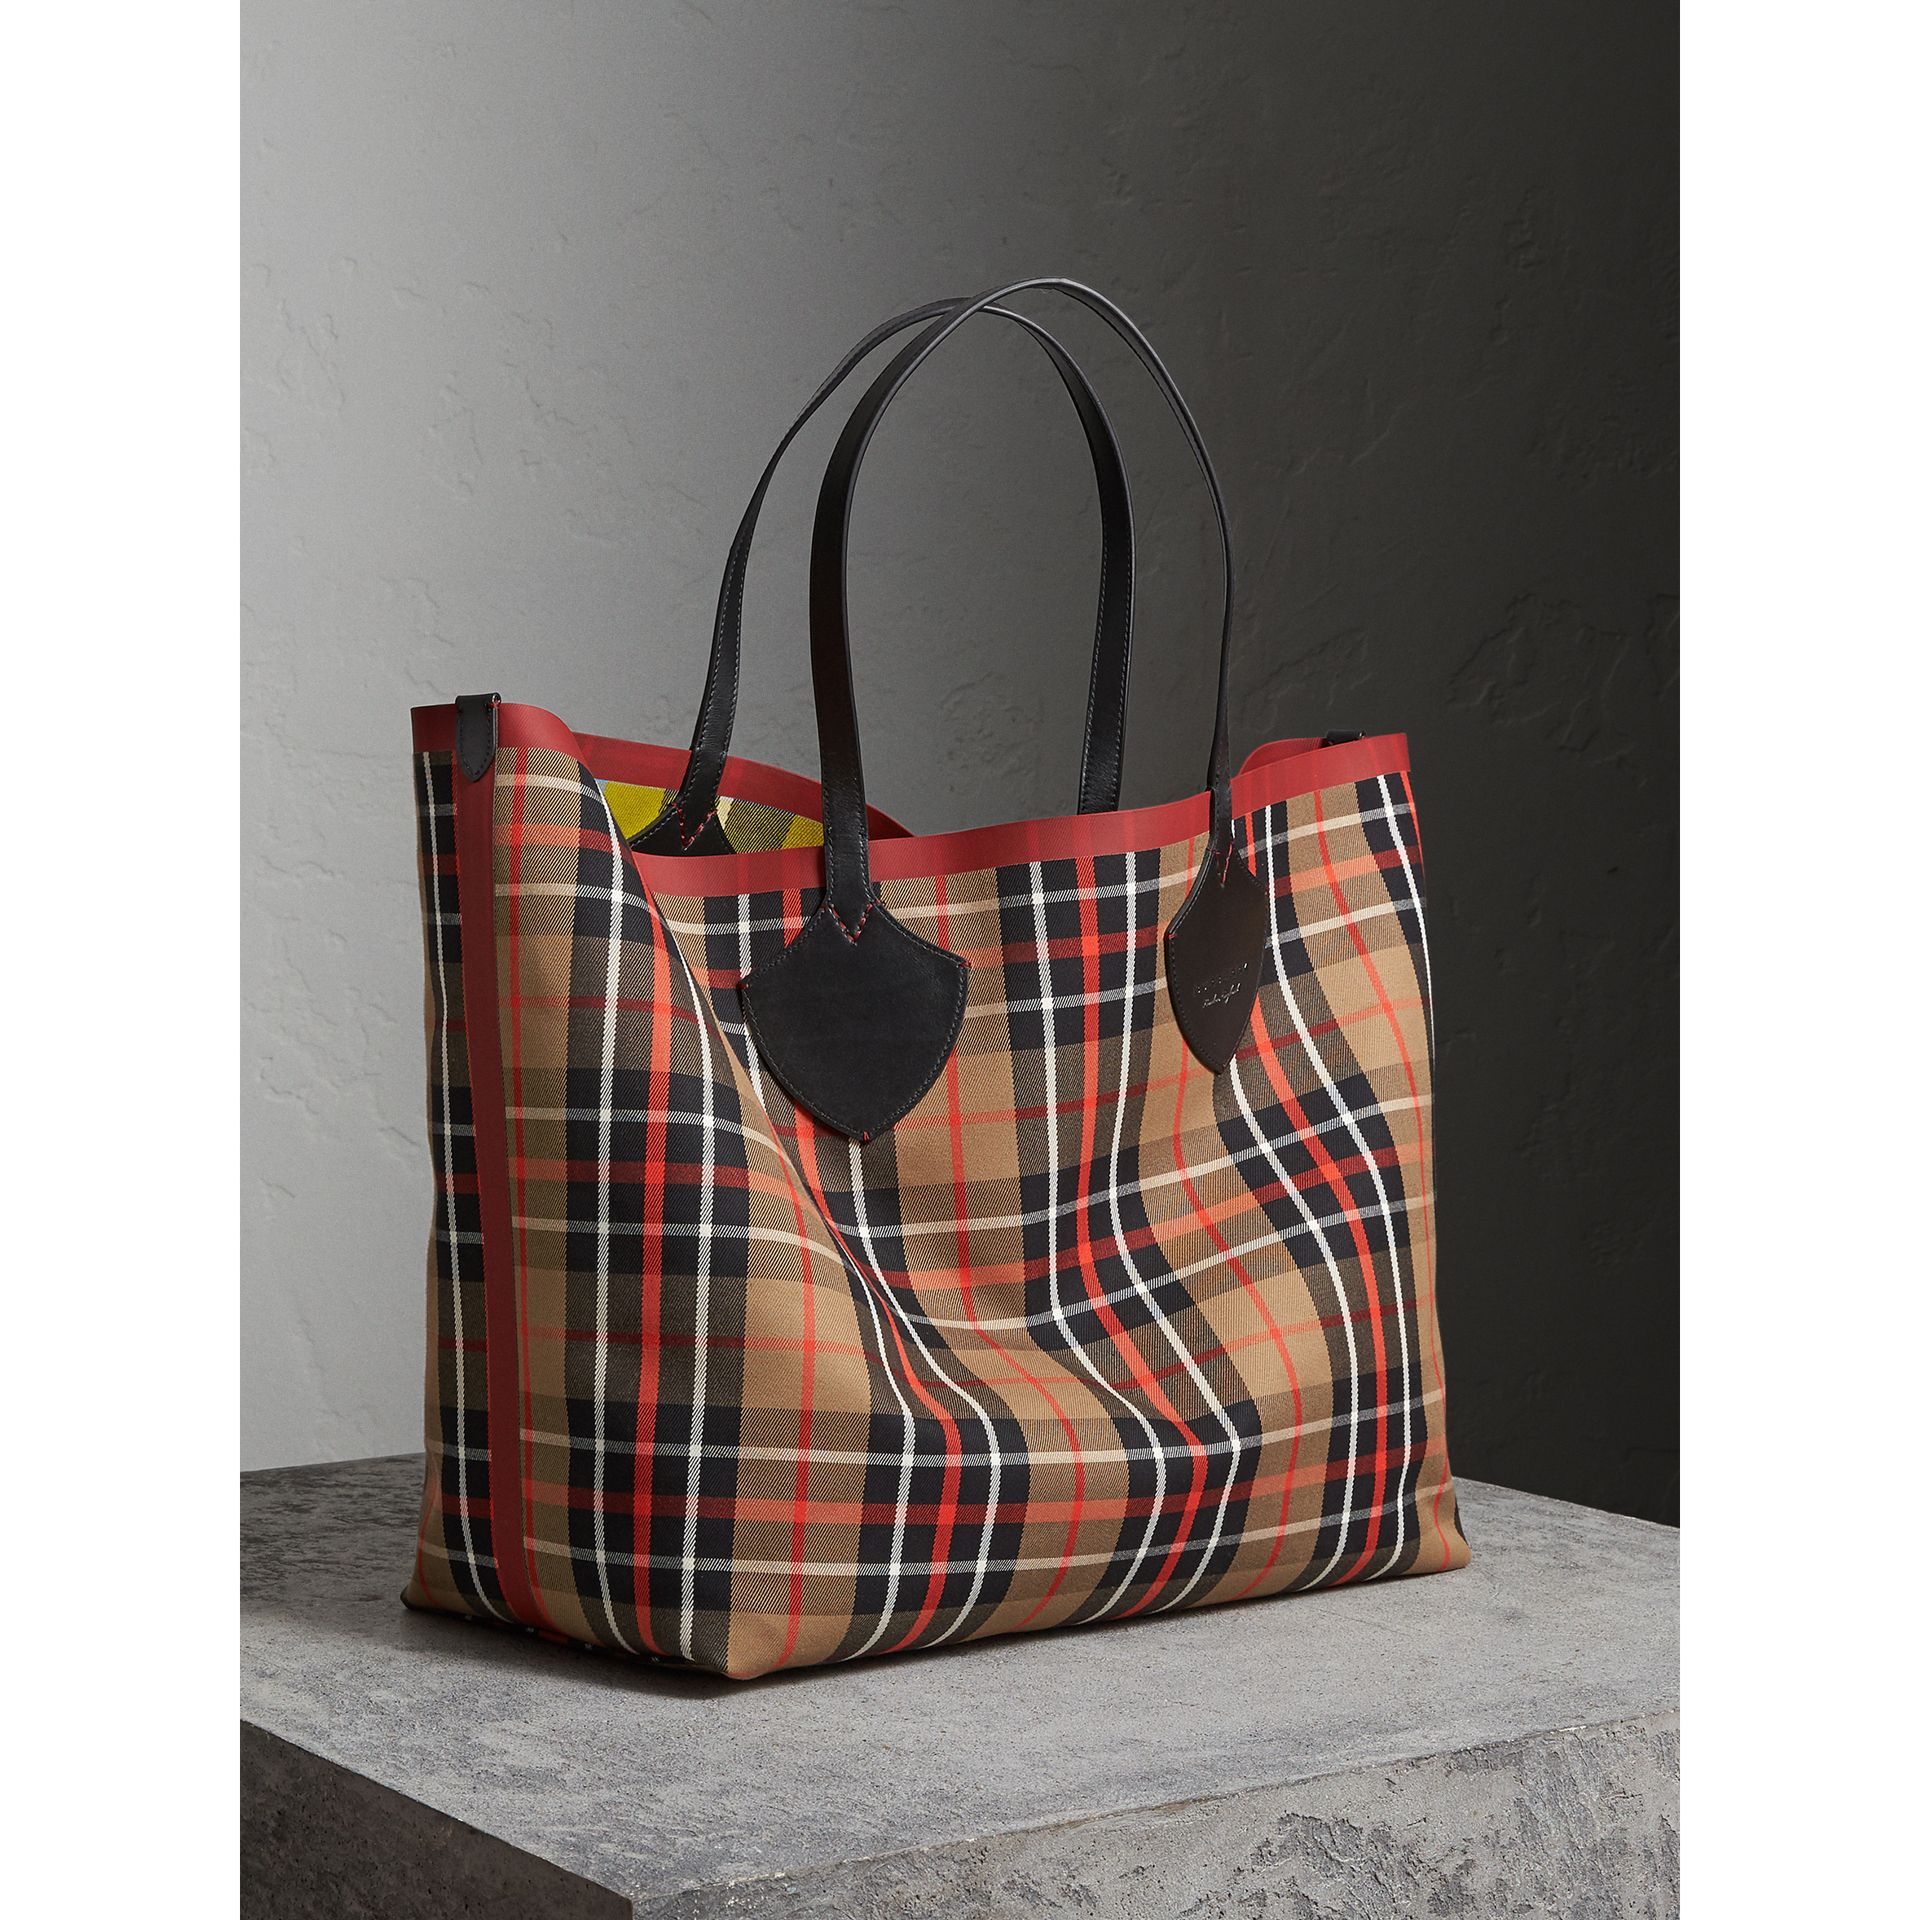 Sac tote The Giant réversible en coton tartan (Caramel/jaune Lin) | Burberry Canada - photo de la galerie 5